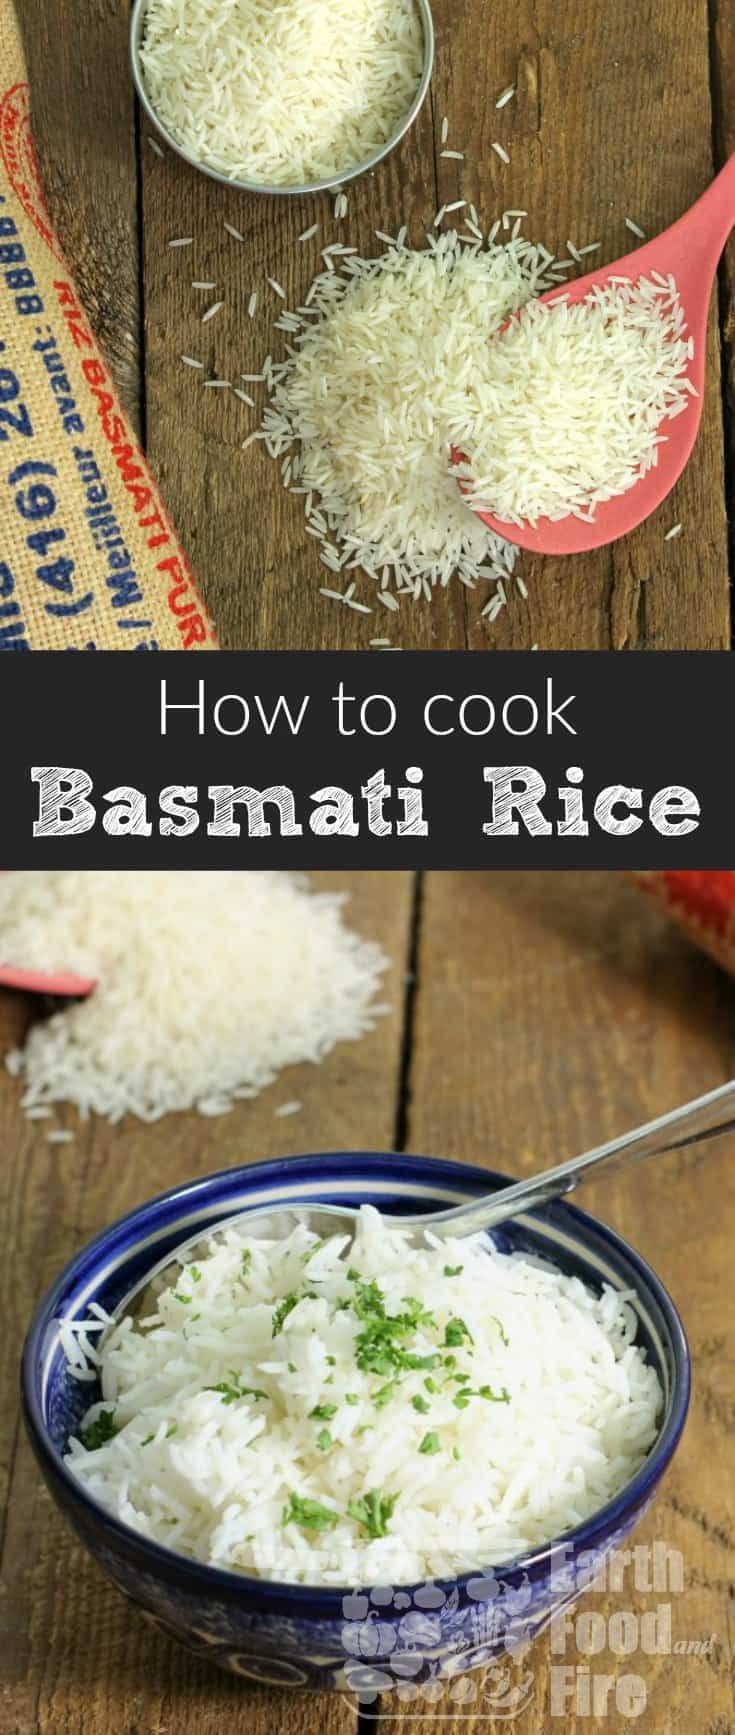 Cooking basmati rice at home is an essential skill everyone should know. Cook perfect and nutritious basmati rice at home consistently with this simple to follow guide! #basmati #rice #glutenfree #healthy #cookingskills #fromscratch via @earthfoodandfire